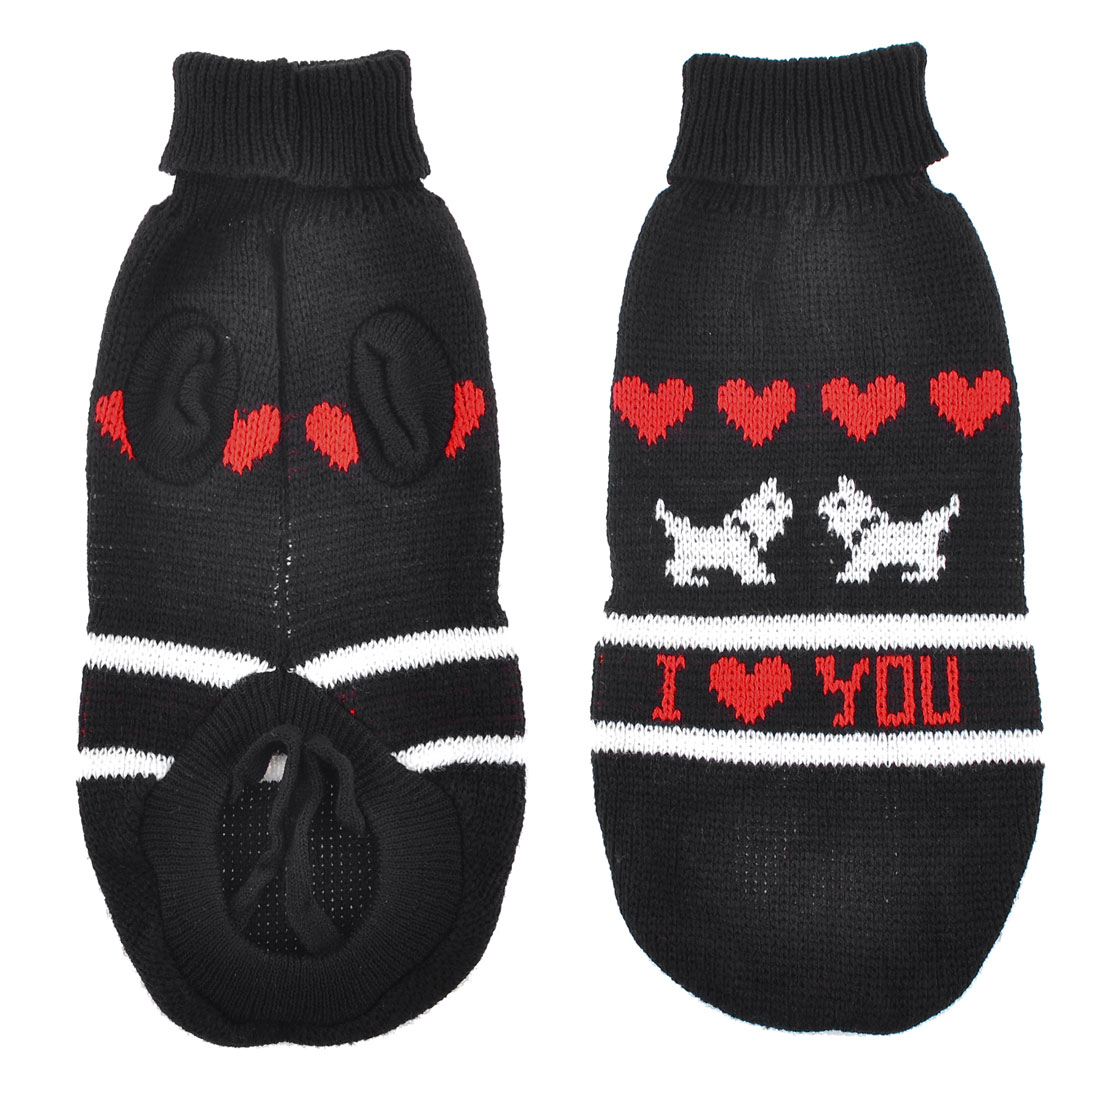 Warm Black Red Heart Pattern Knitted Sleeves Pet Dog Sweater Clothes Size XS